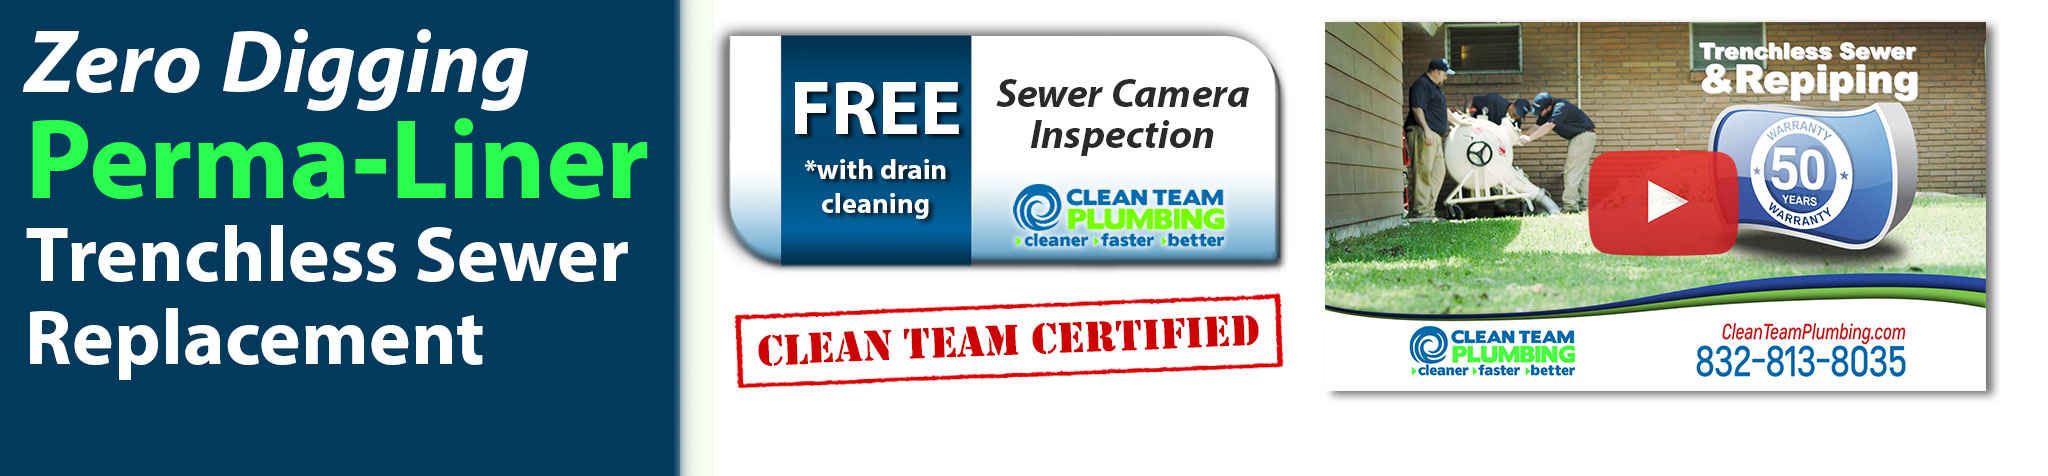 No-Dig Houston Trenchless Sewer Replacement with Perma-Liner